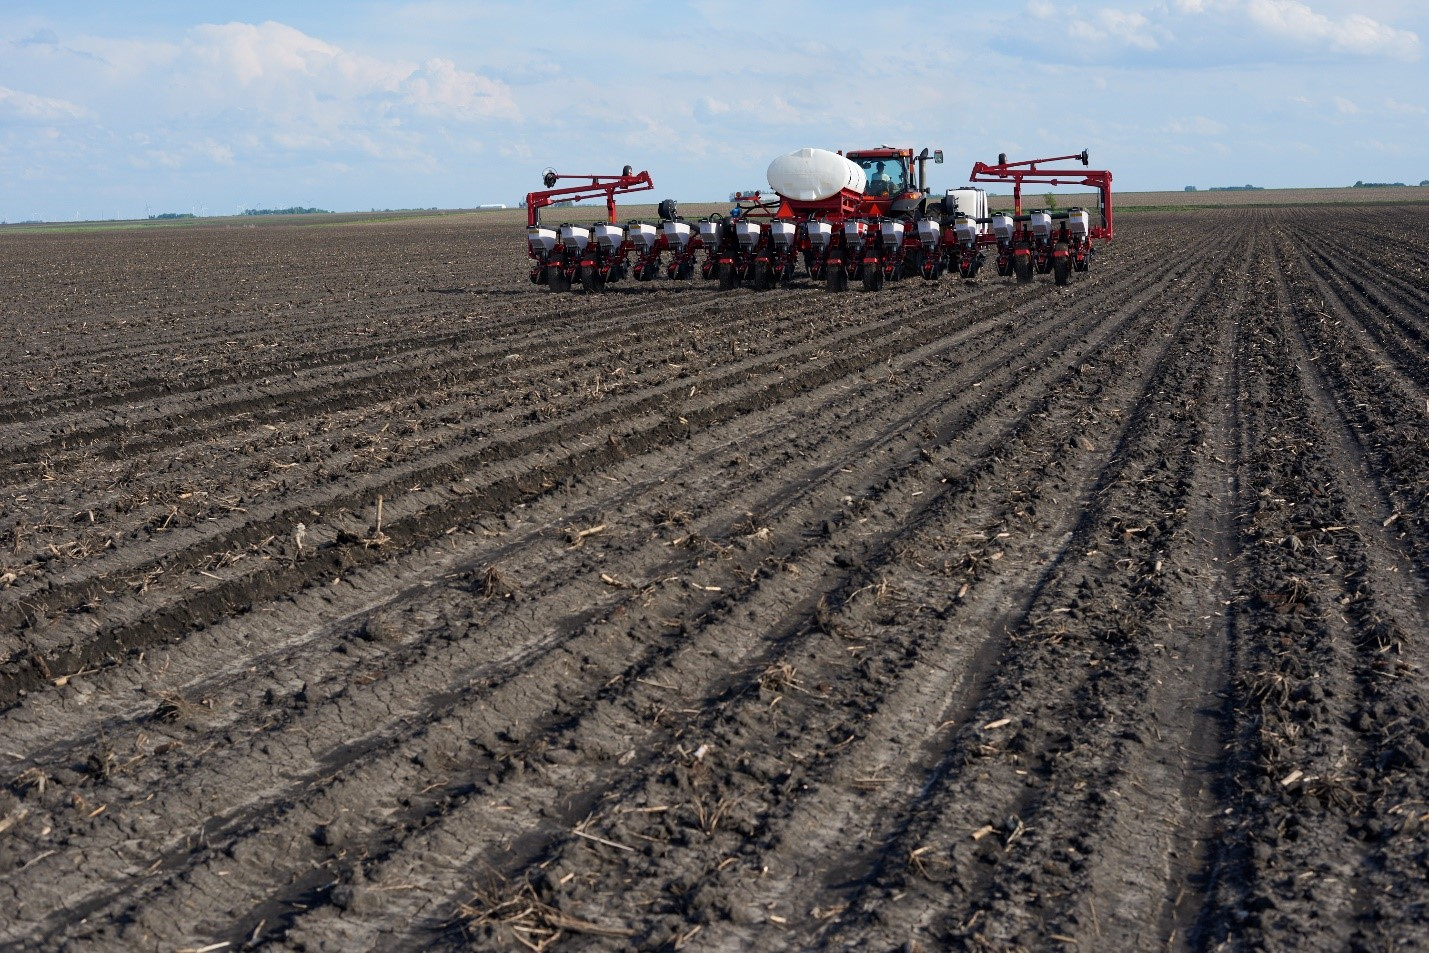 This agronomic image shows a machine planting in a field